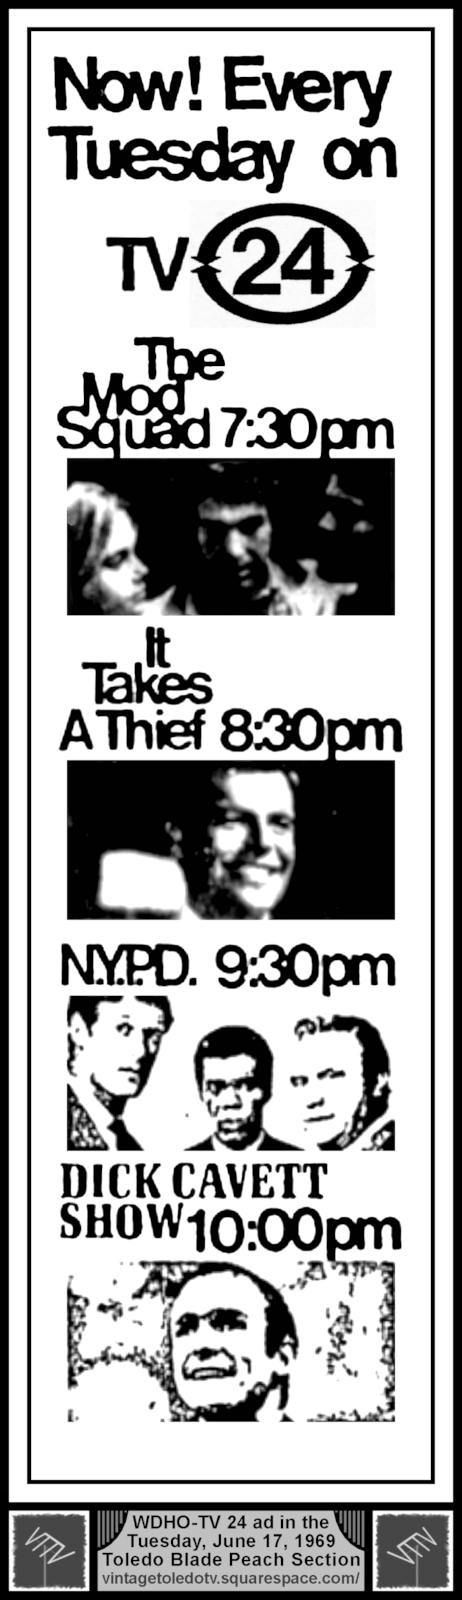 Vintage Toledo TV - WDHO-TV & WNWO-TV24 Print ads - ABC Tuesday Night Shows (6/17/69)